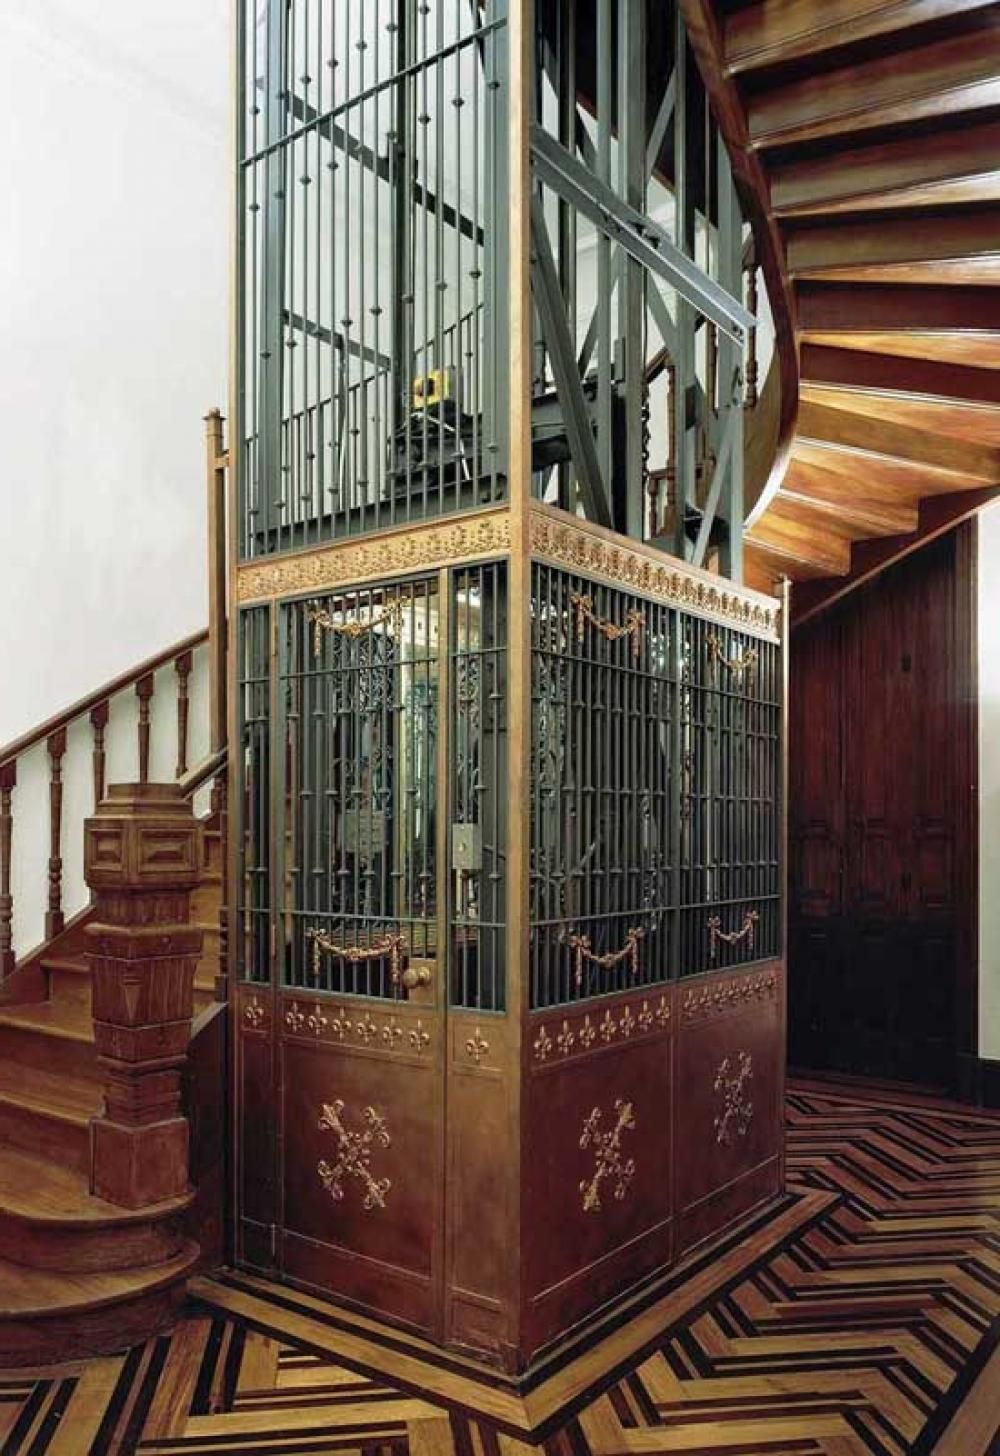 Best Unique House Look Old With Spiral Staircase Design In The 640 x 480